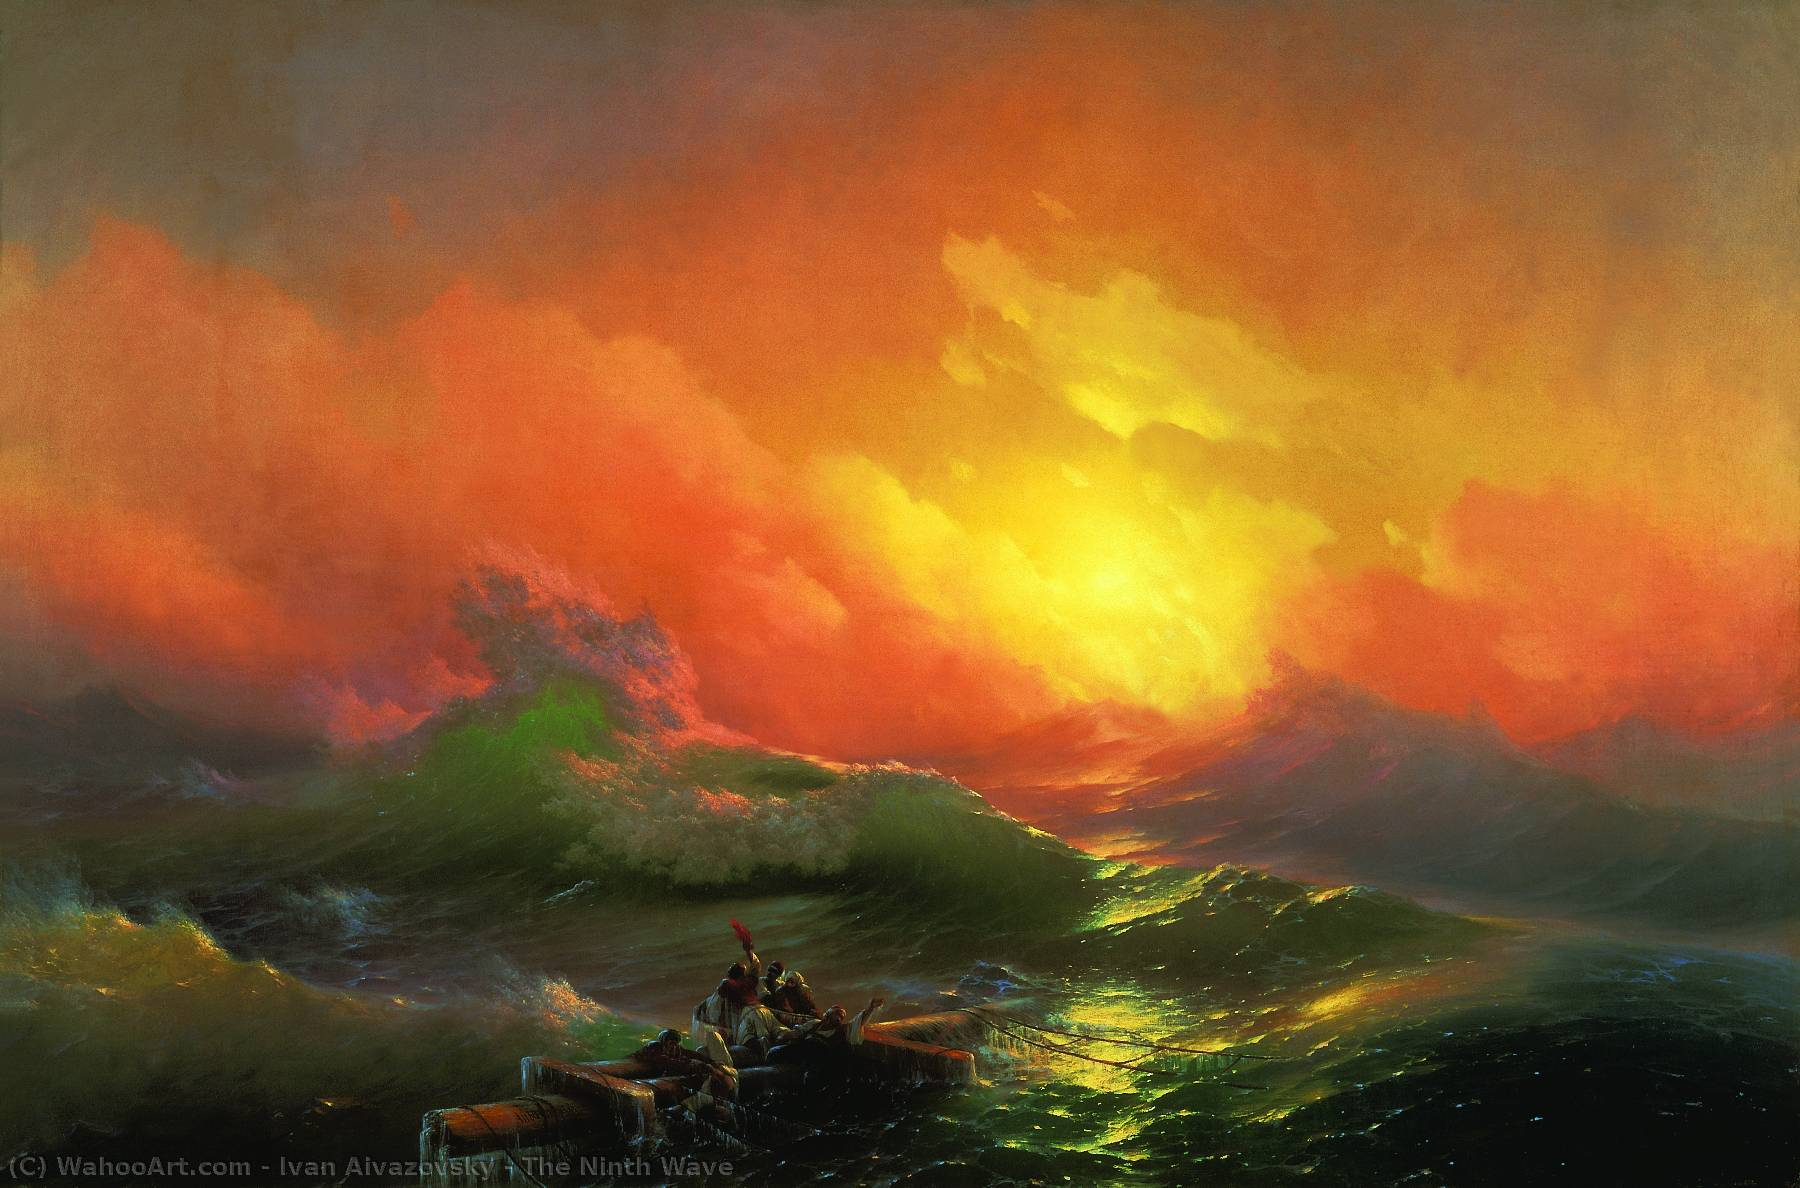 famous painting The Ninth Wave of Ivan Aivazovsky